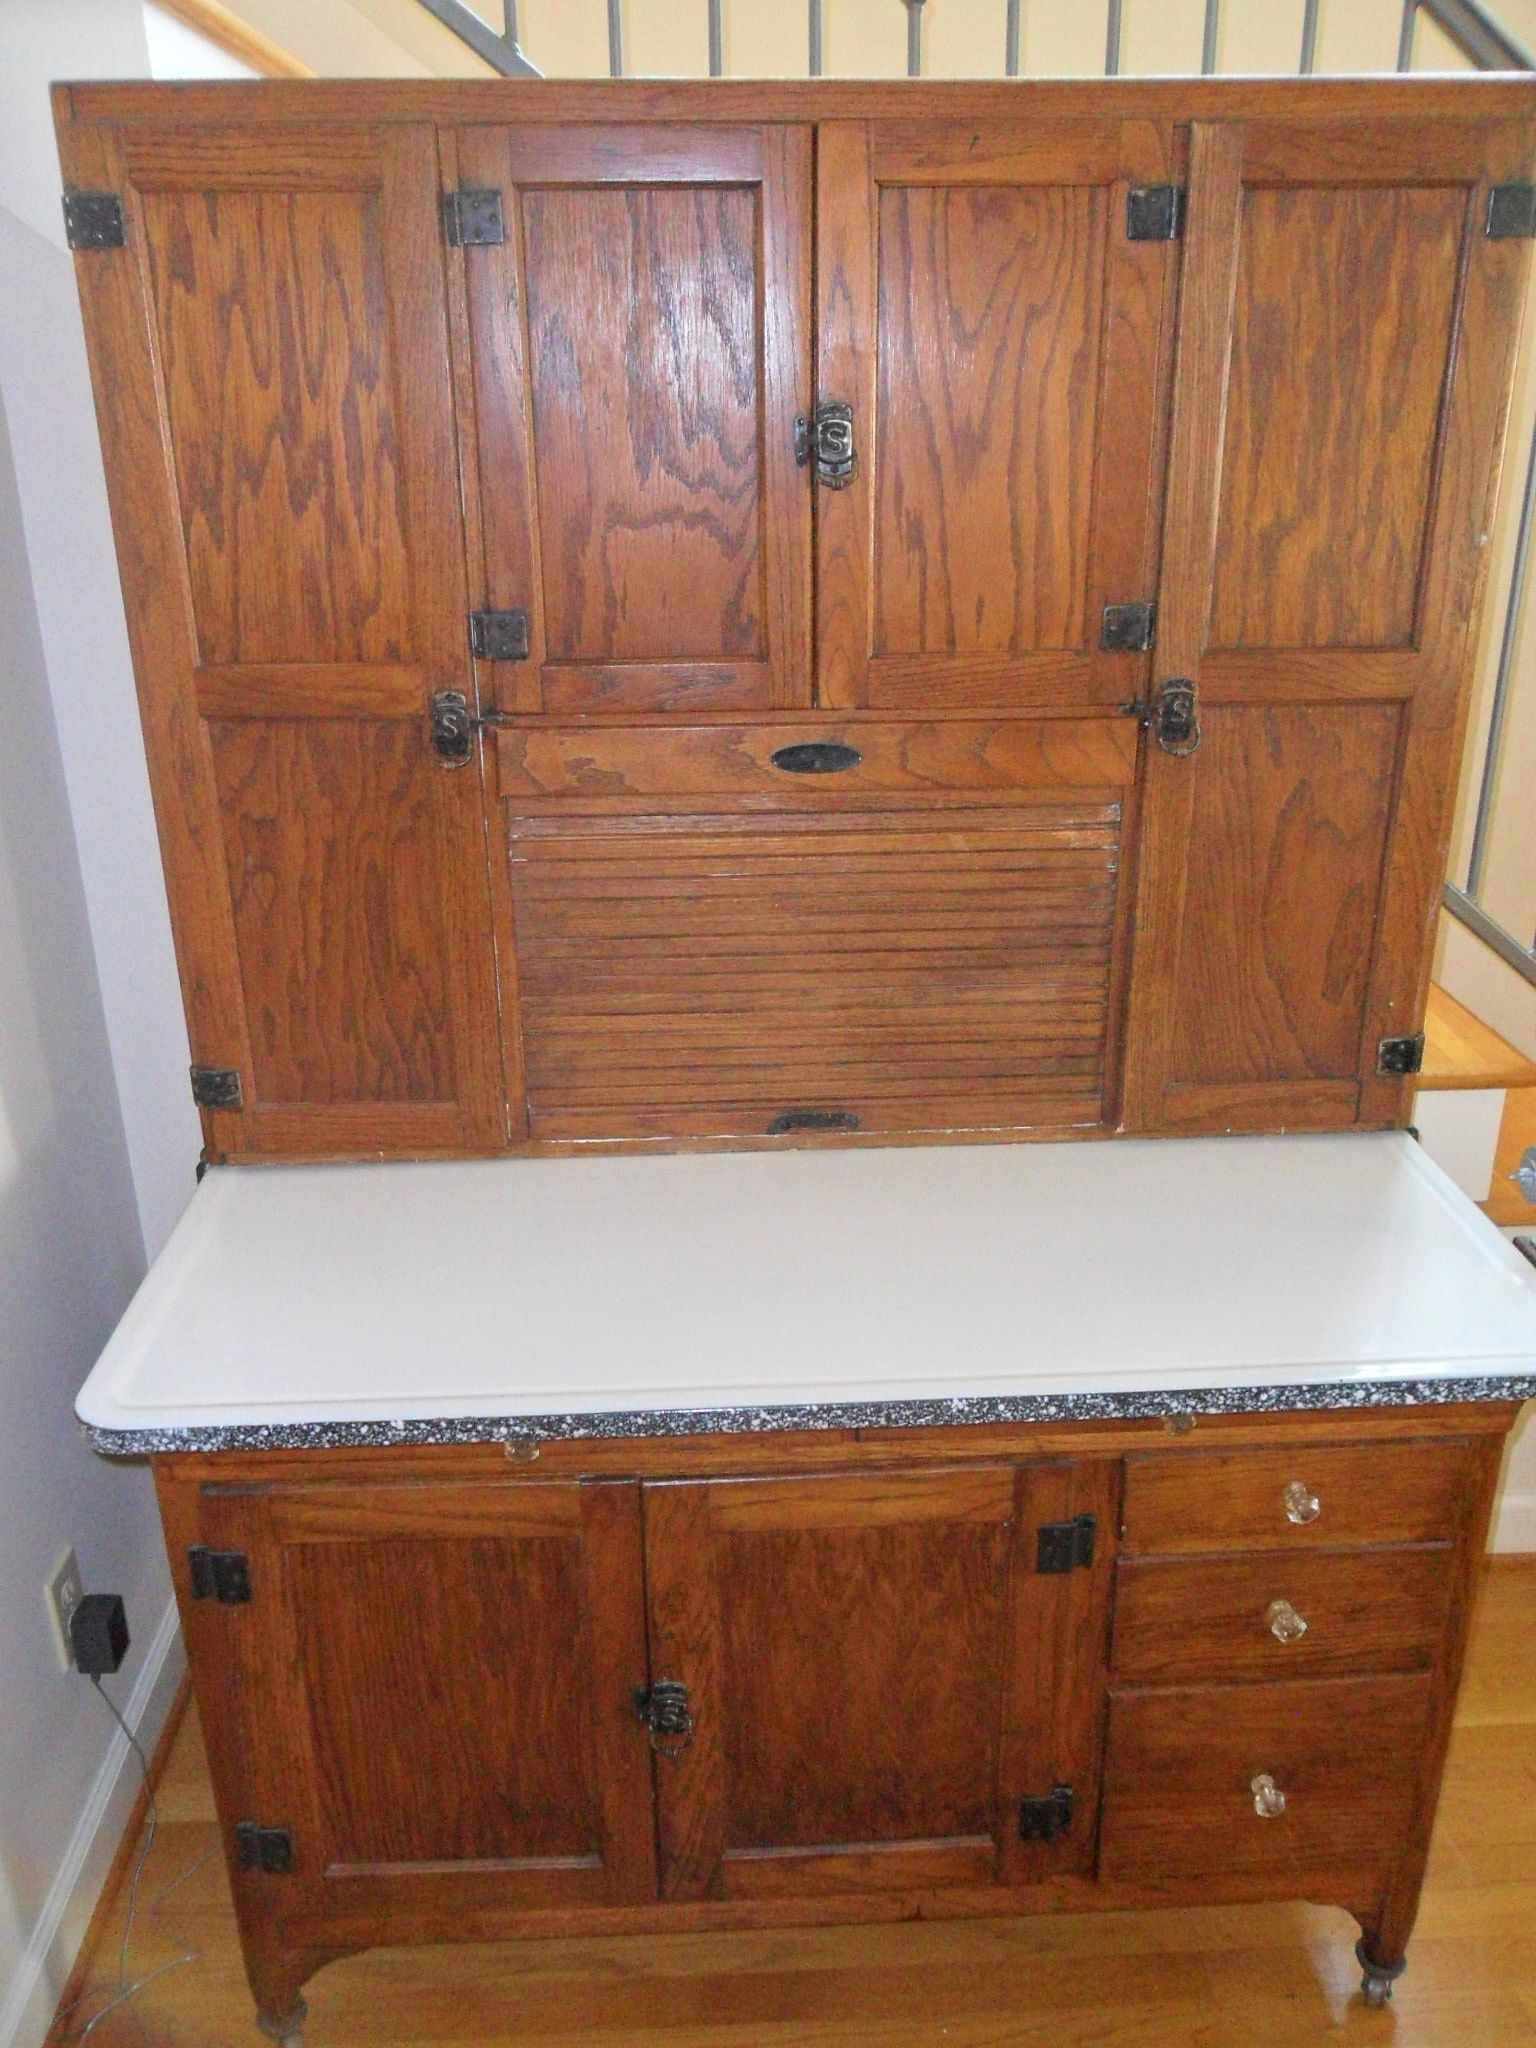 Antique kitchen cupboard - Antique Bakers Cabinet Sellers Bakers Cabinet Instappraisal